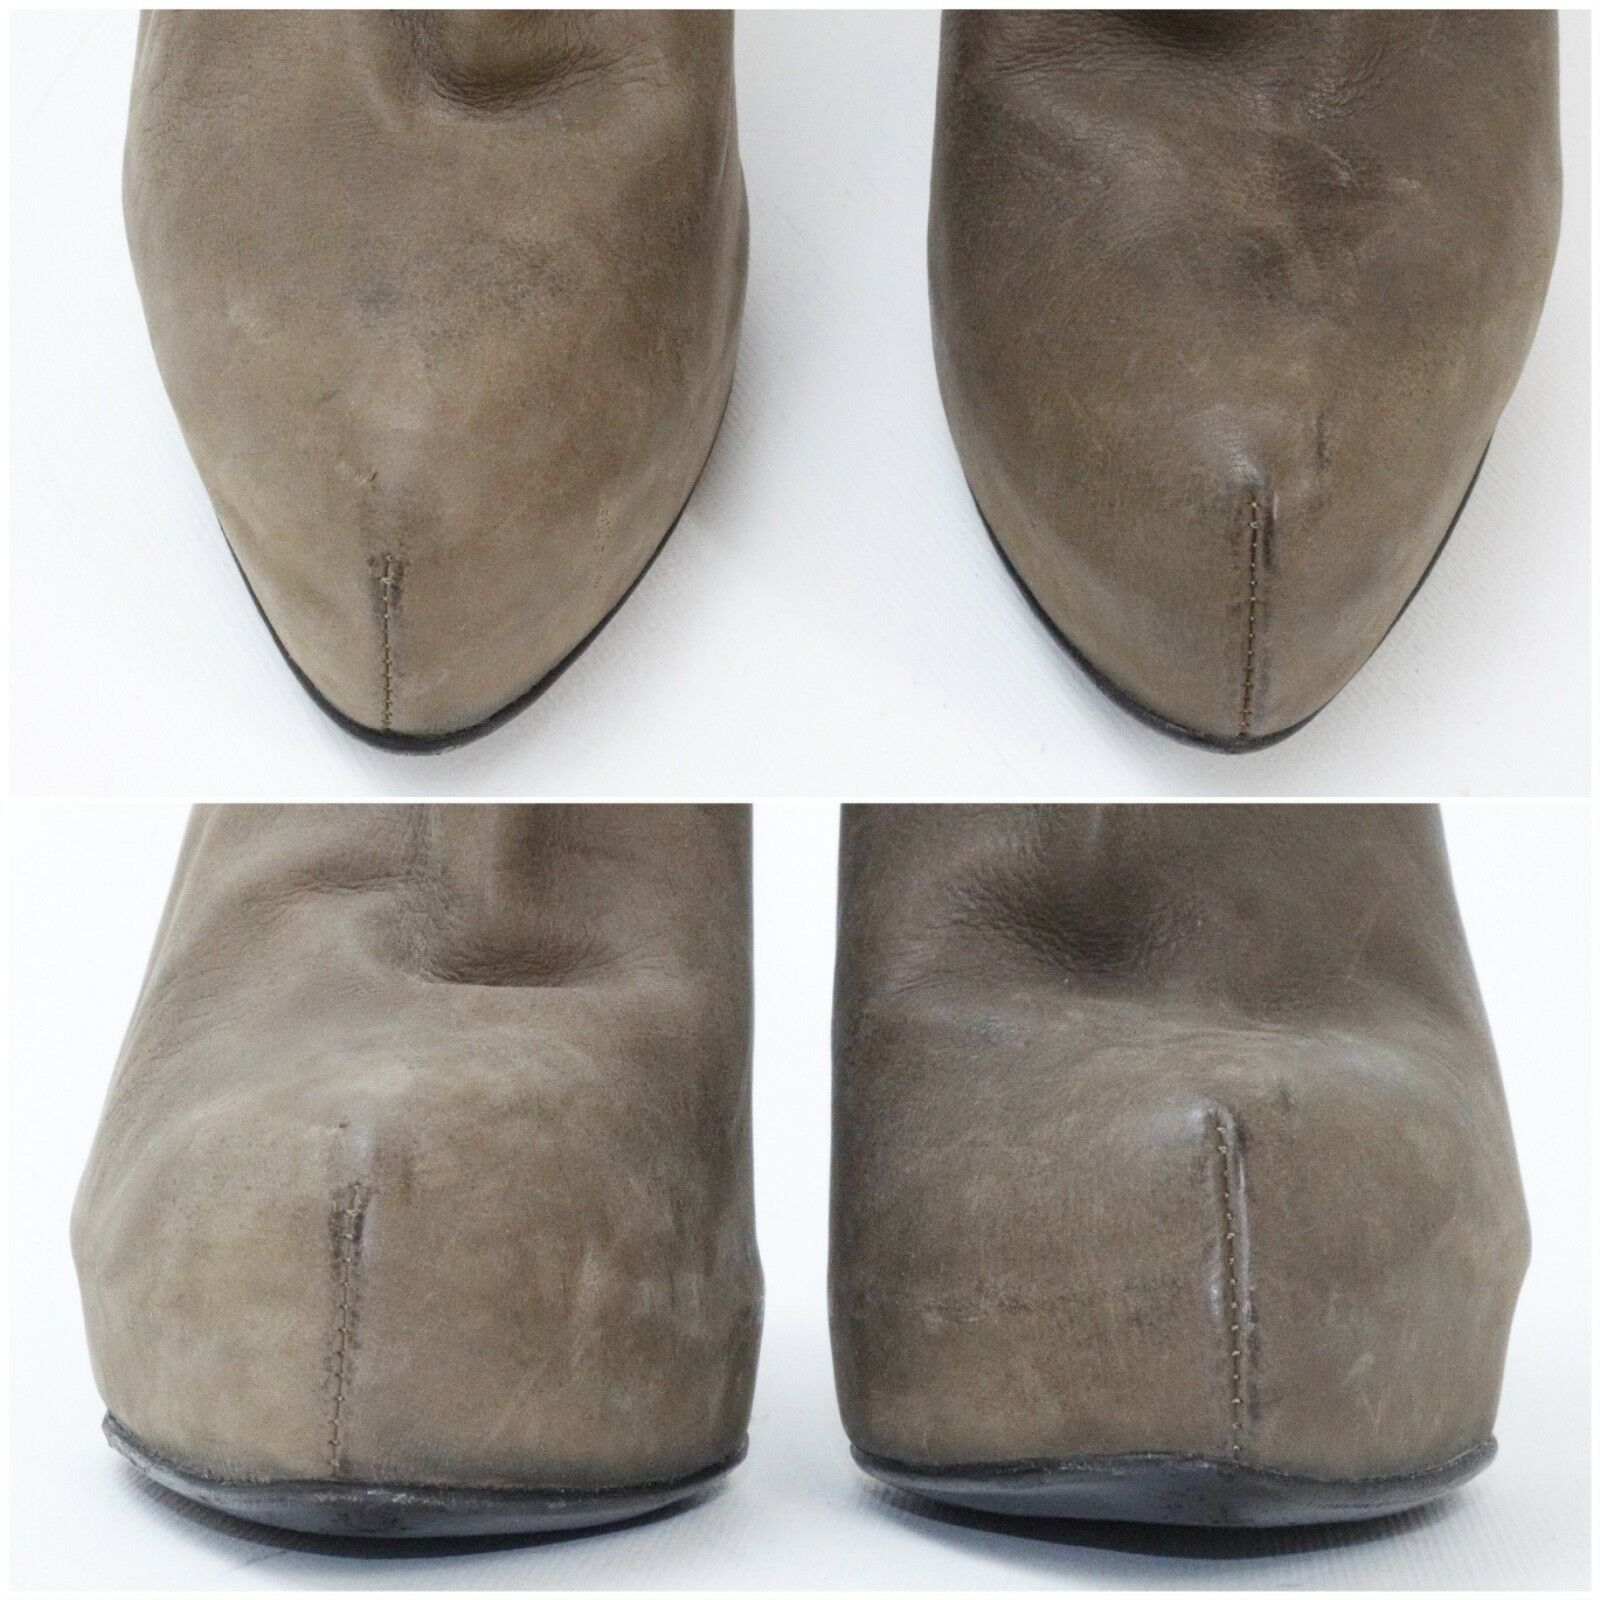 Haider Ackermann - Size Ankle 36 - Brown Ankle Size Boots Back Zipper - Made in Italy 9f82ae